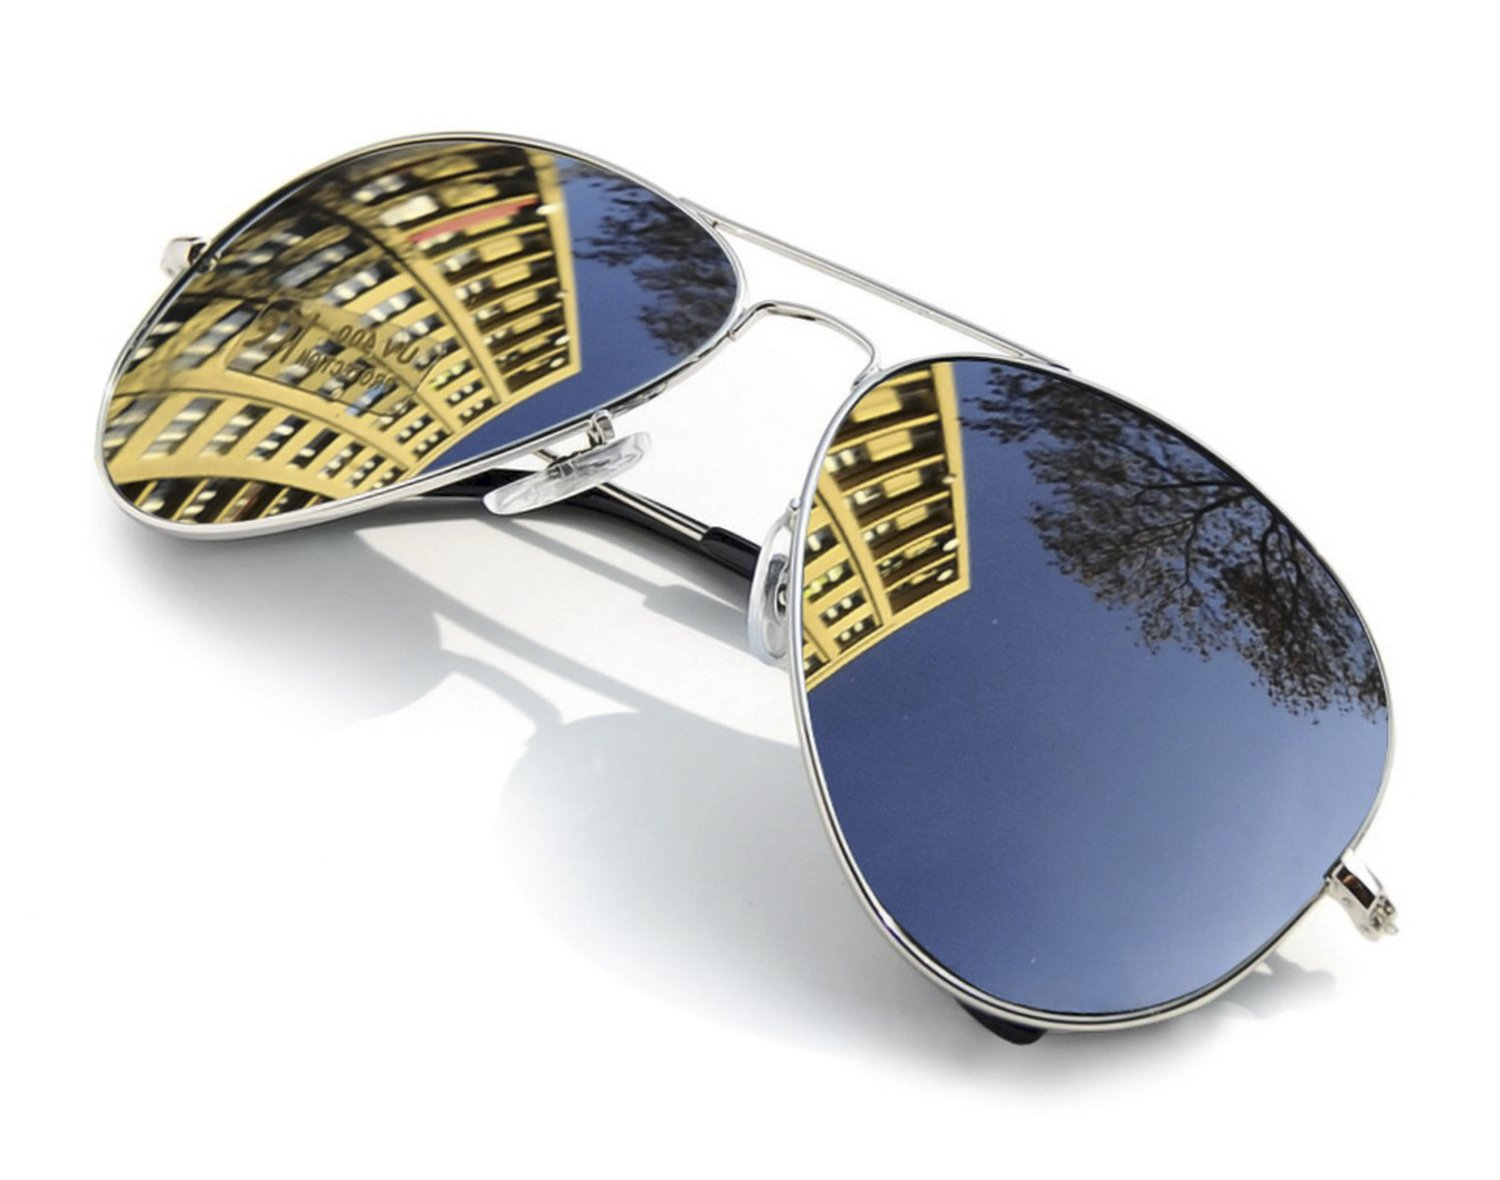 4sold UNISEX MENS WOMENS 70's Designer Style Unisex Silver Mirror Sunglasses - UV400 Protection - One Size Fits All - Full Mirrored Lenses